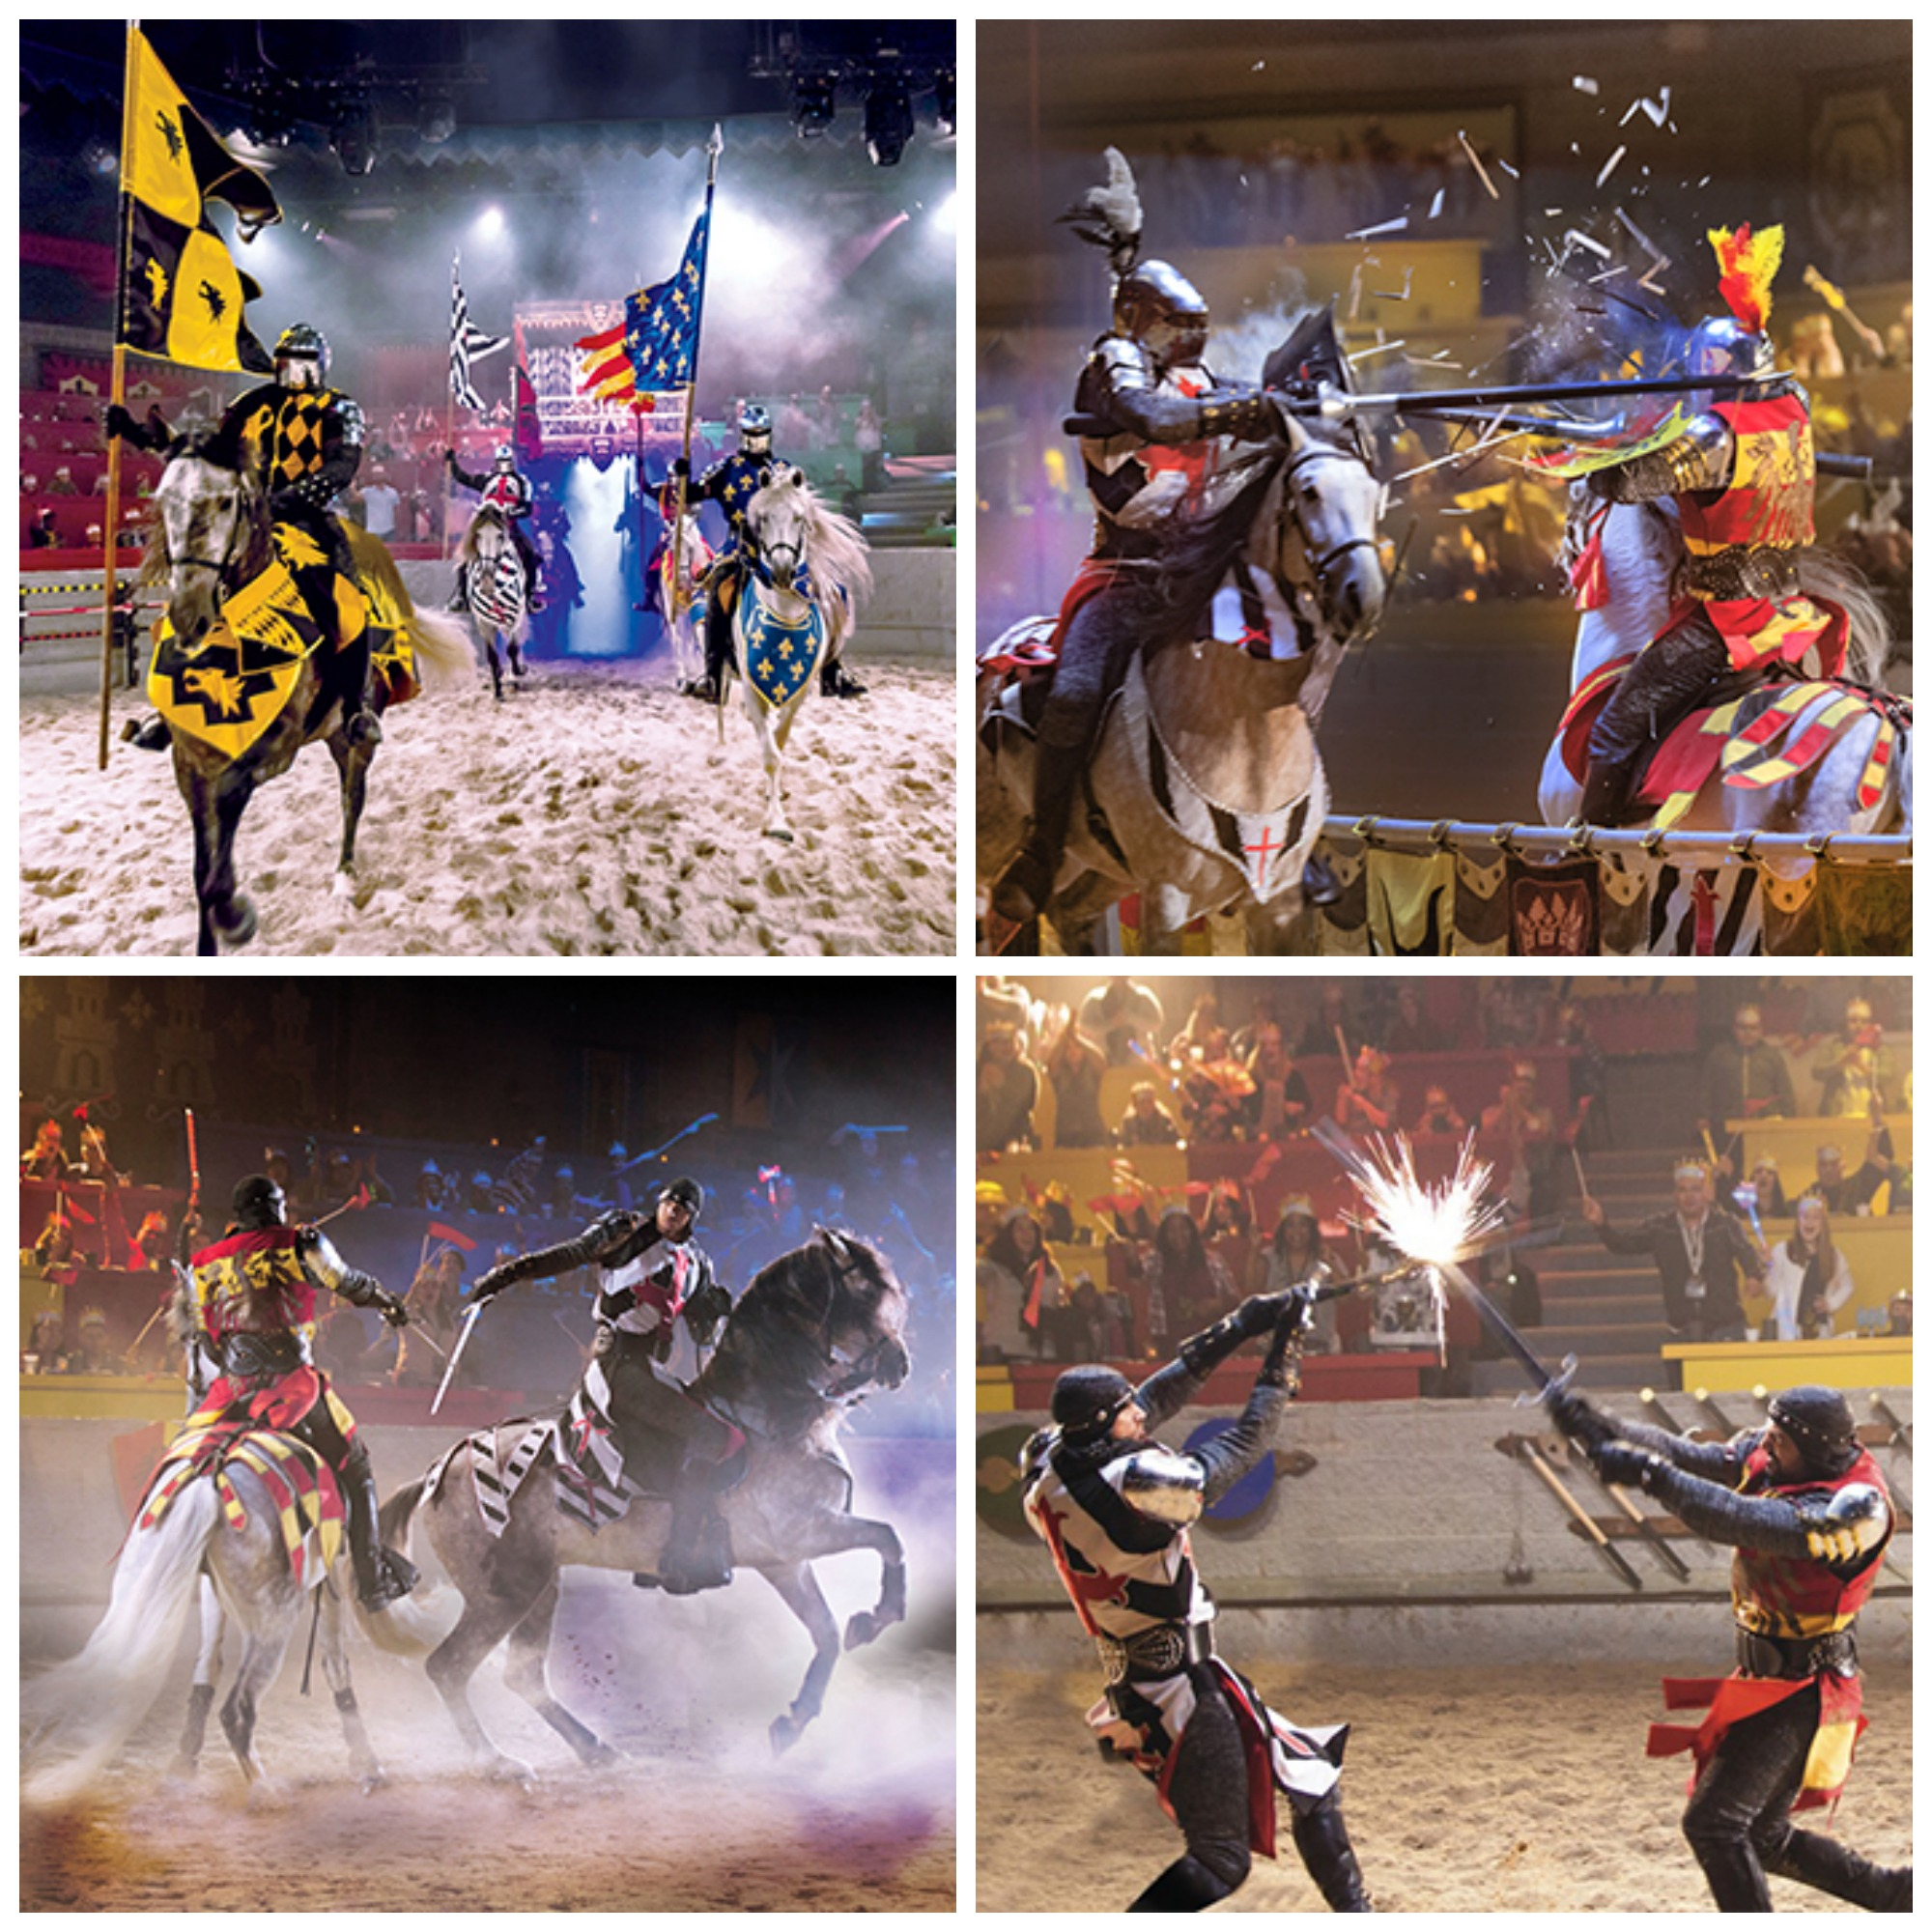 Medieval Times With Teens #MedievalTimesPartner #MedievalTimes #MedievalTimesWithTeens #VisitBuenaPark #SimpleSojourns